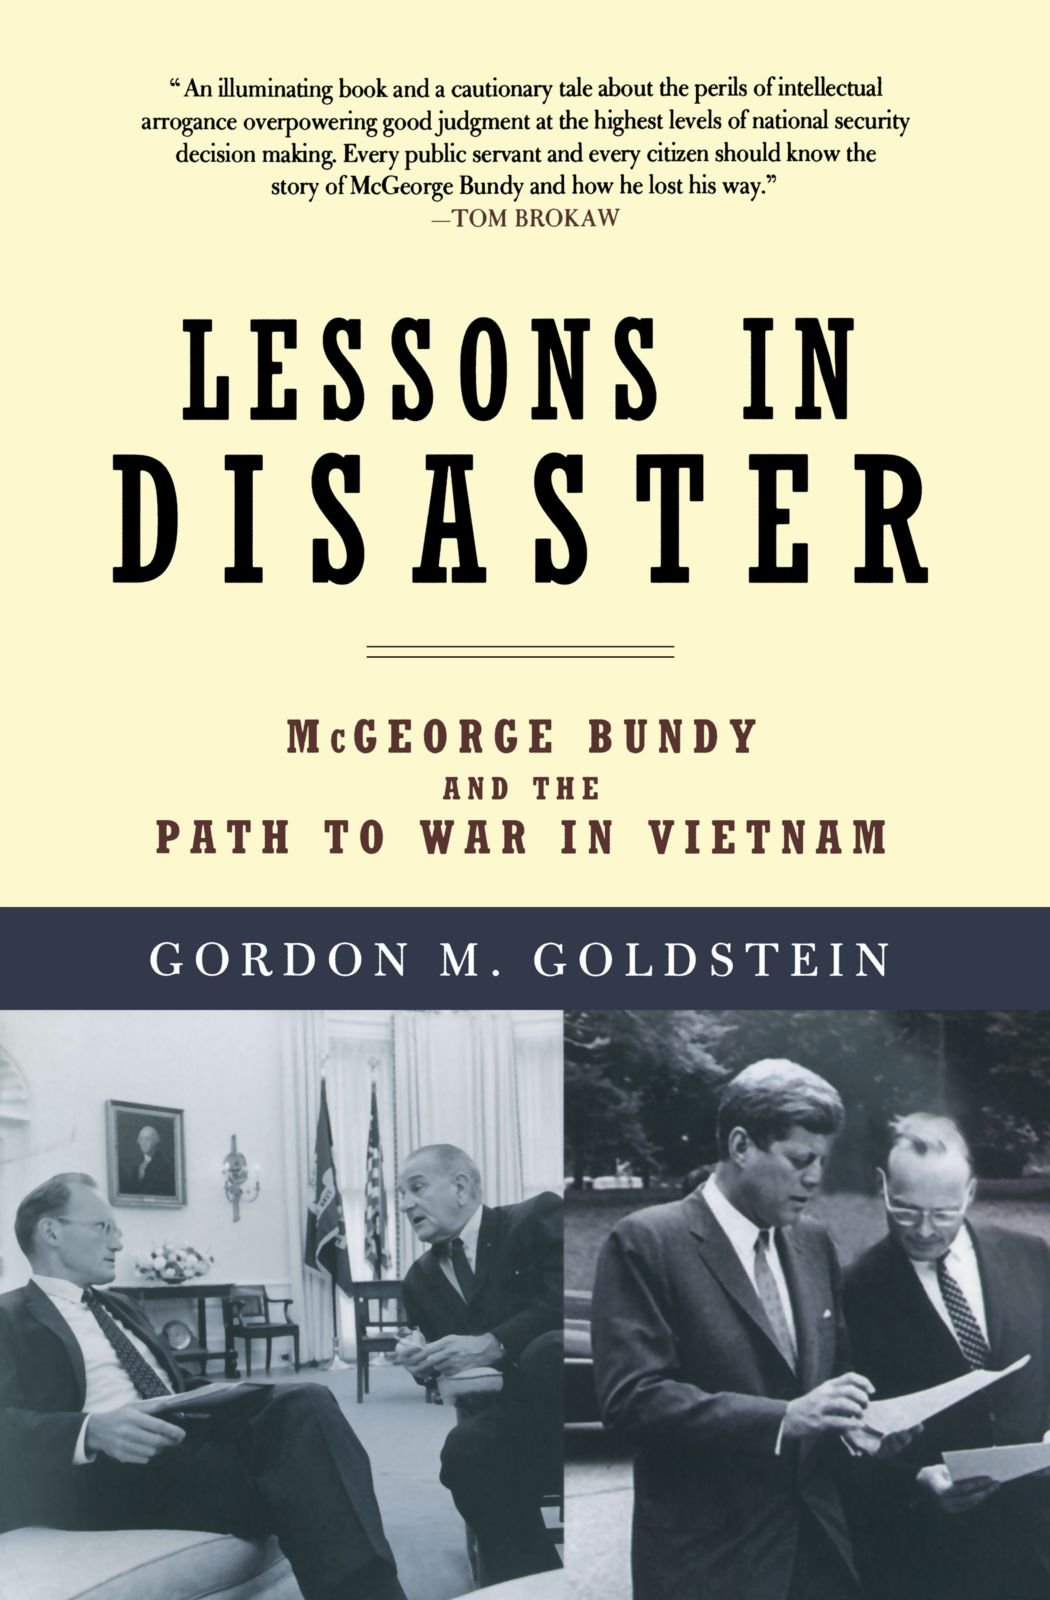 Lessons in disaster mcgeorge bundy and the path to war in vietnam lessons in disaster mcgeorge bundy and the path to war in vietnam gordon m goldstein 9780805090871 amazon books fandeluxe Gallery